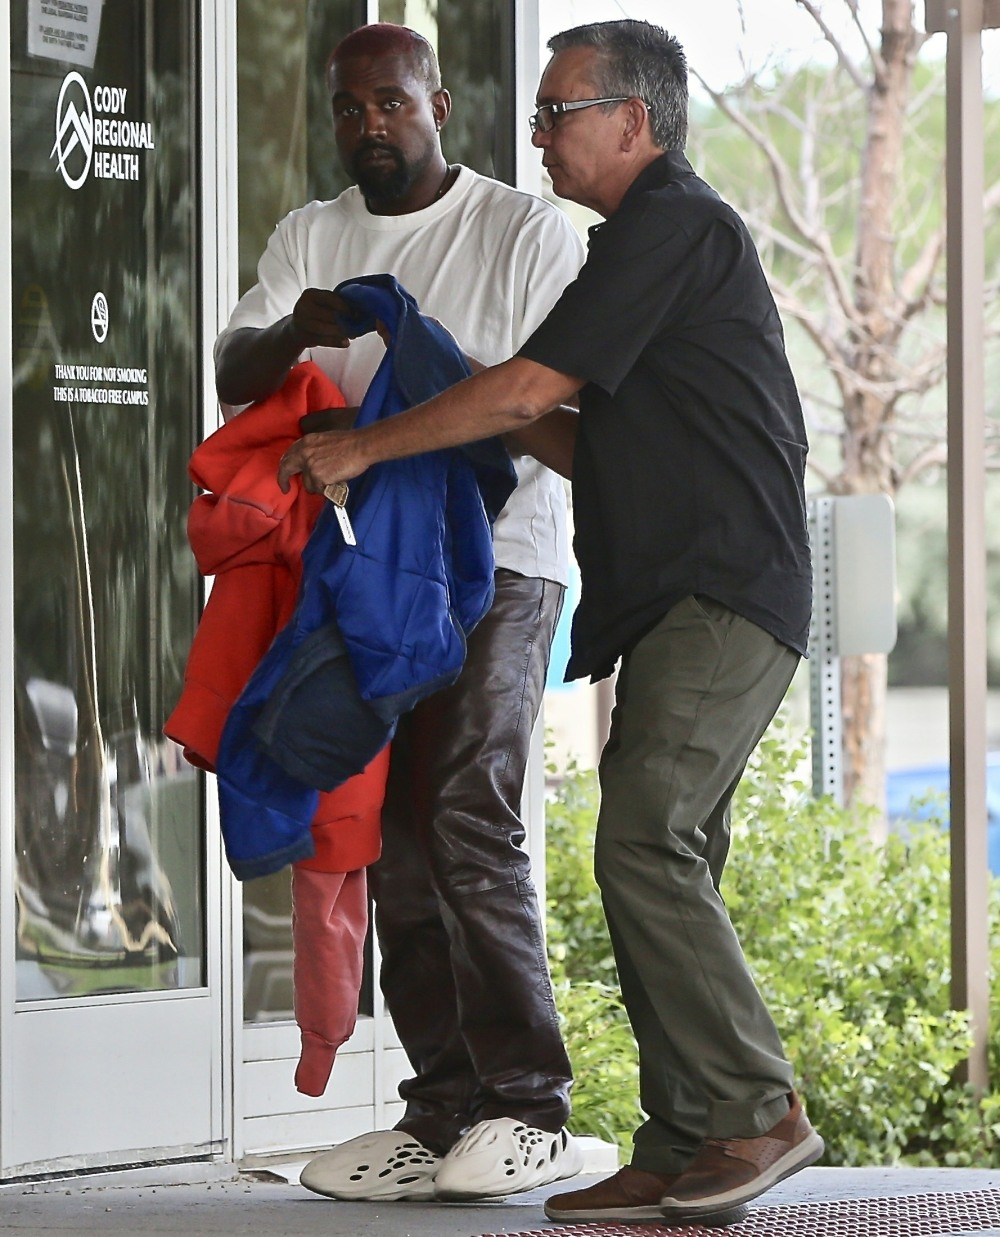 Kanye West makes a short visit to the West Park Hospital in Cody, Wyoming